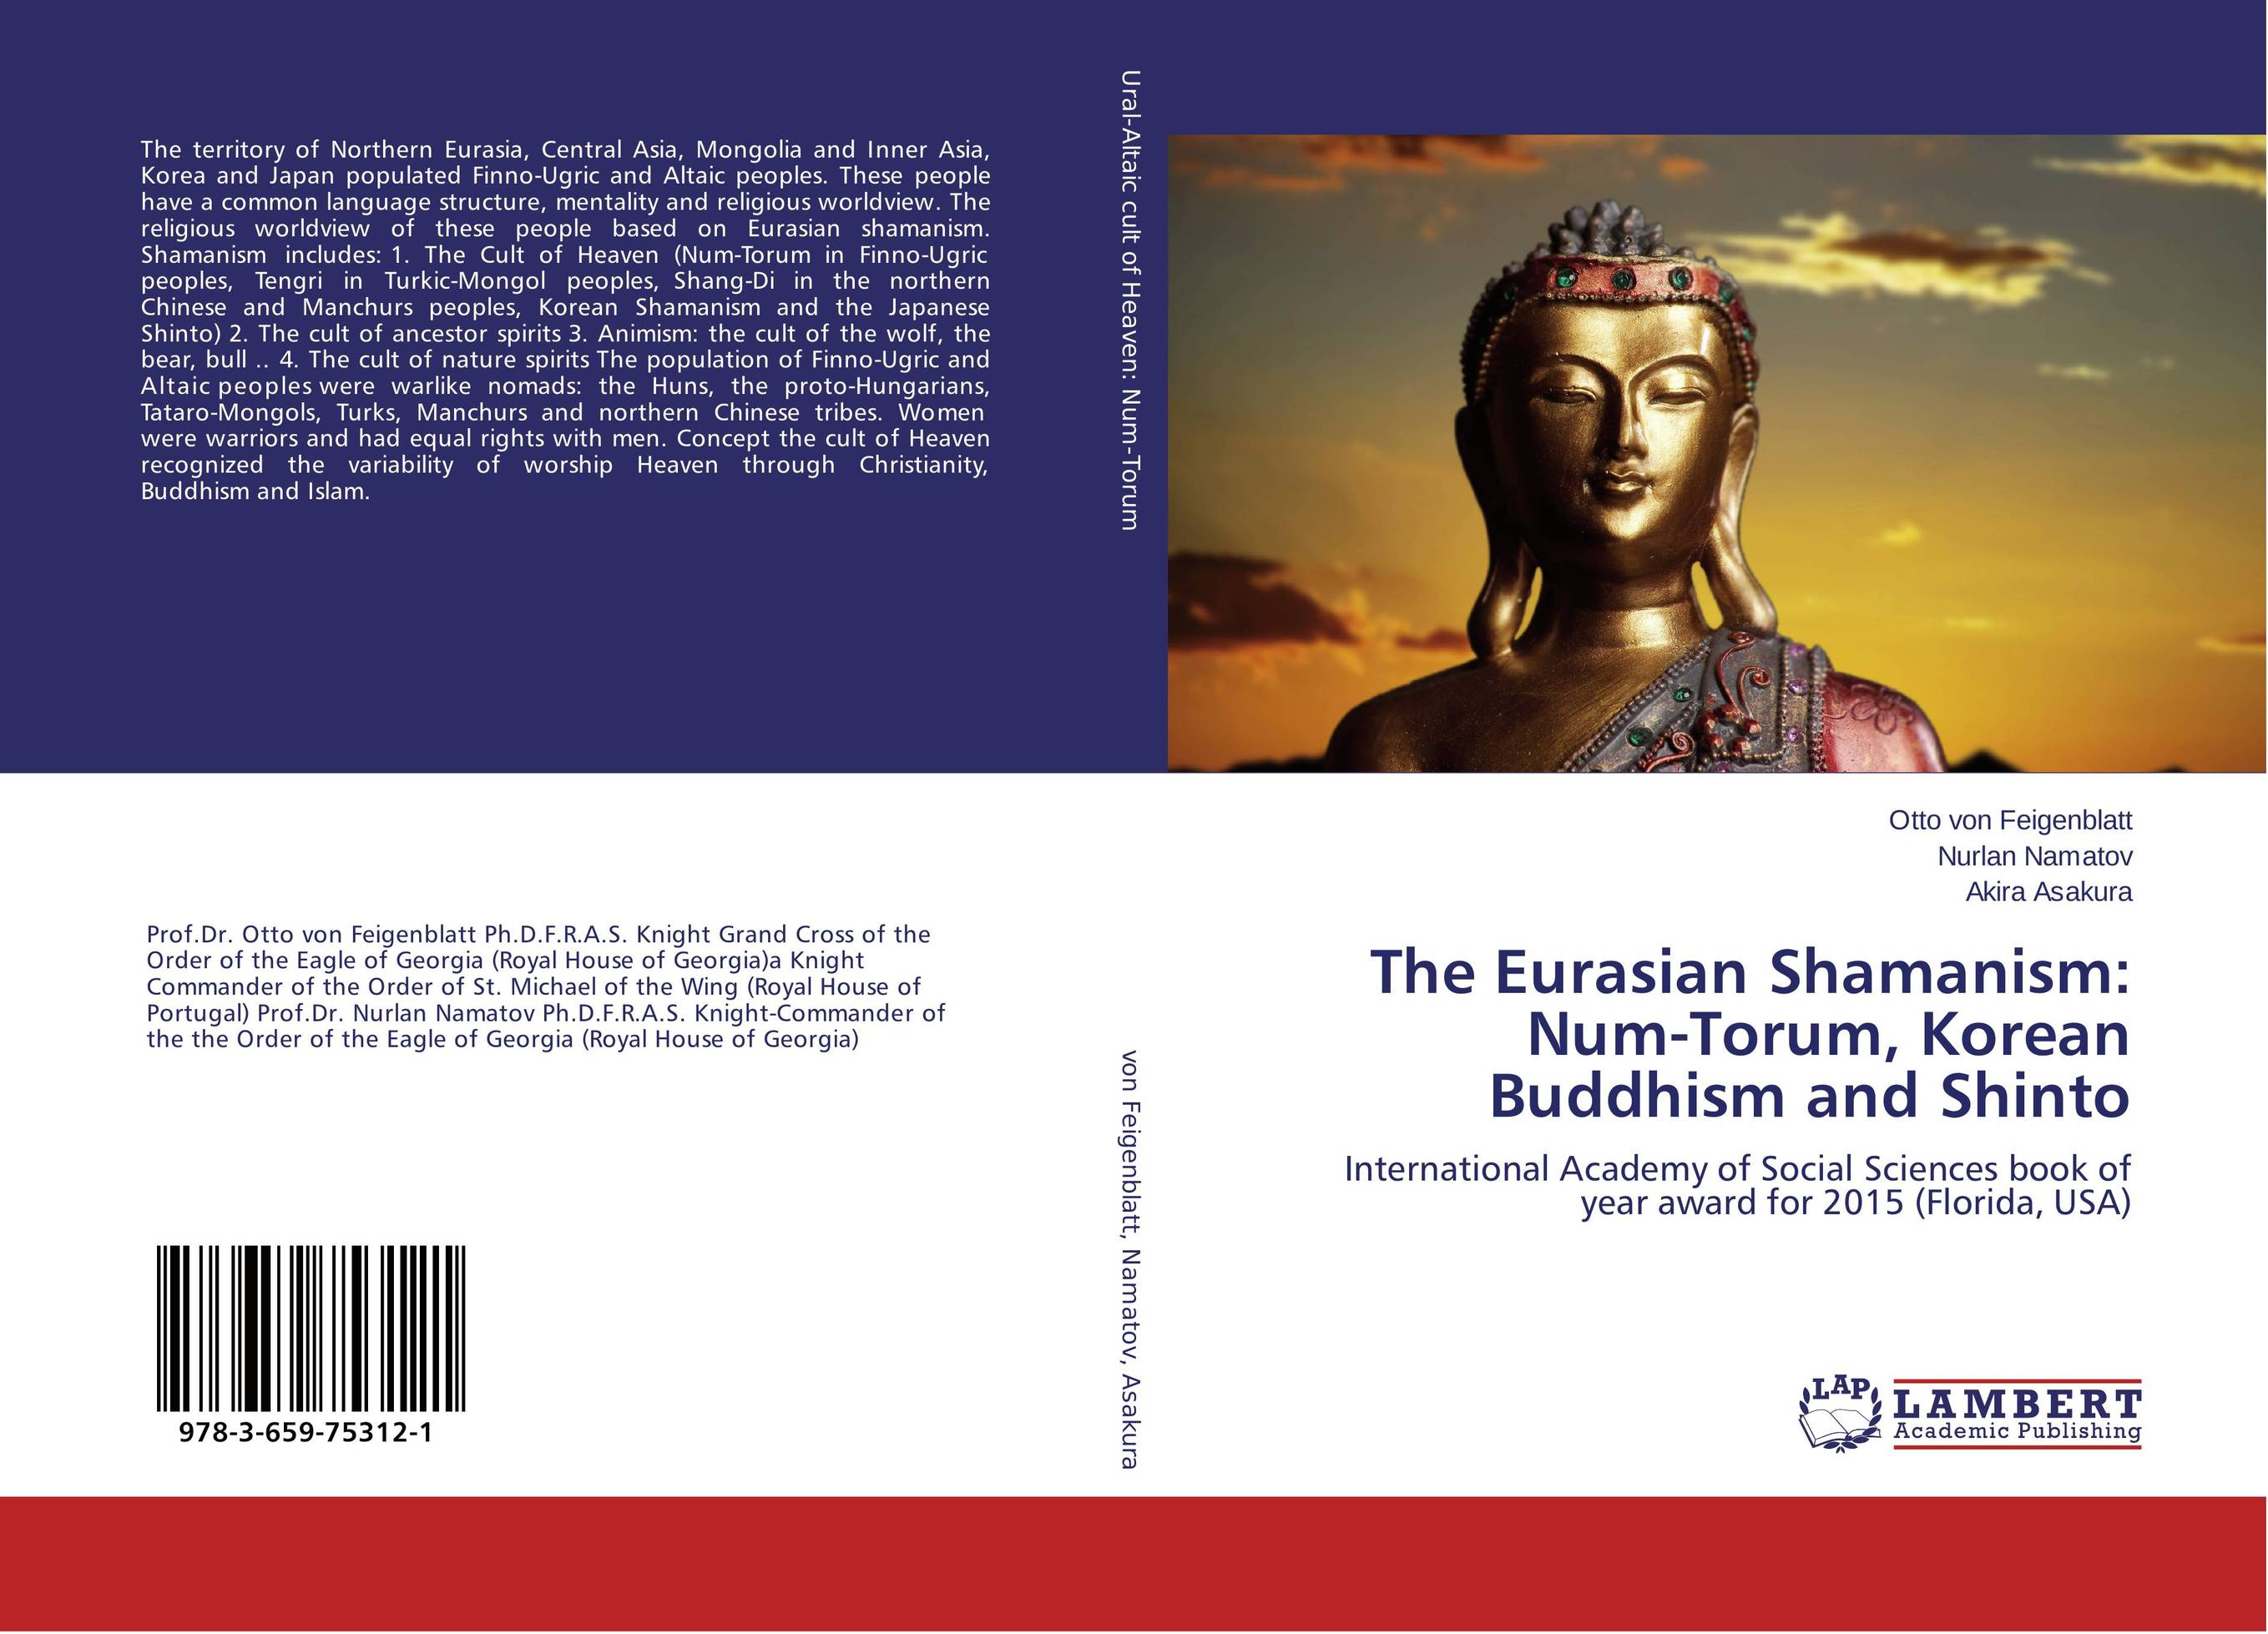 The Eurasian Shamanism: Num-Torum, Korean Buddhism and Shinto cult of wolf and world tree in eurasian and american native peoples